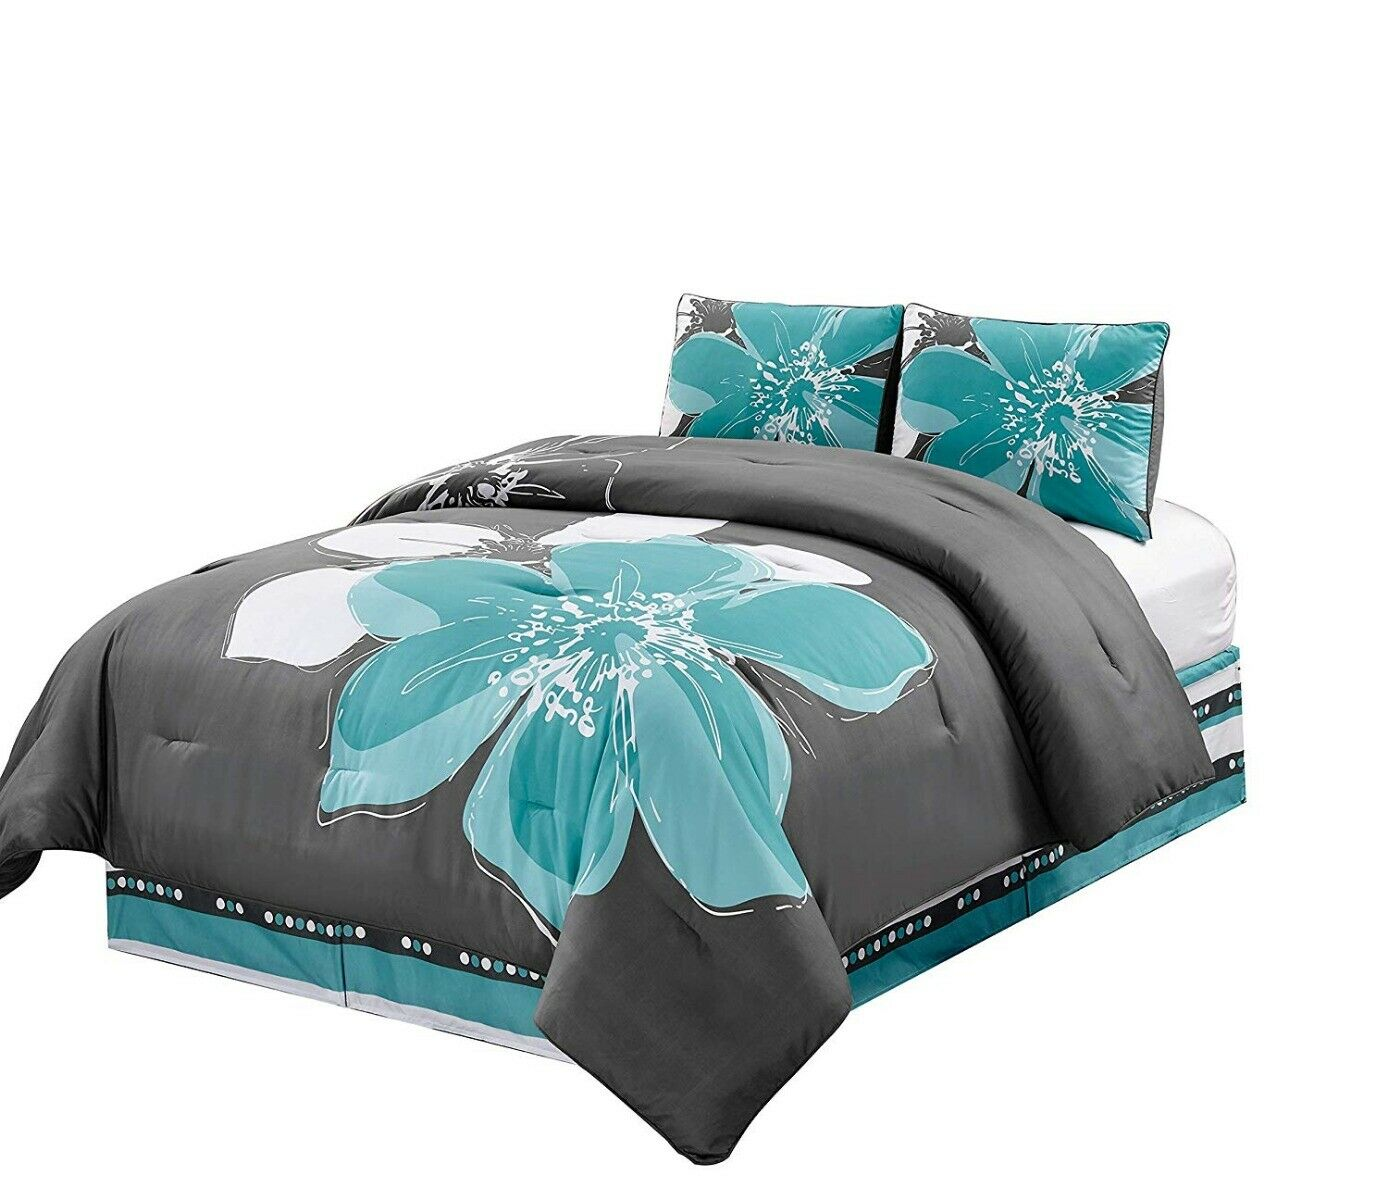 4 Pc Aqua bluee, Grey, White Hibiscus Floral FULL Size Comforter Set Bedding